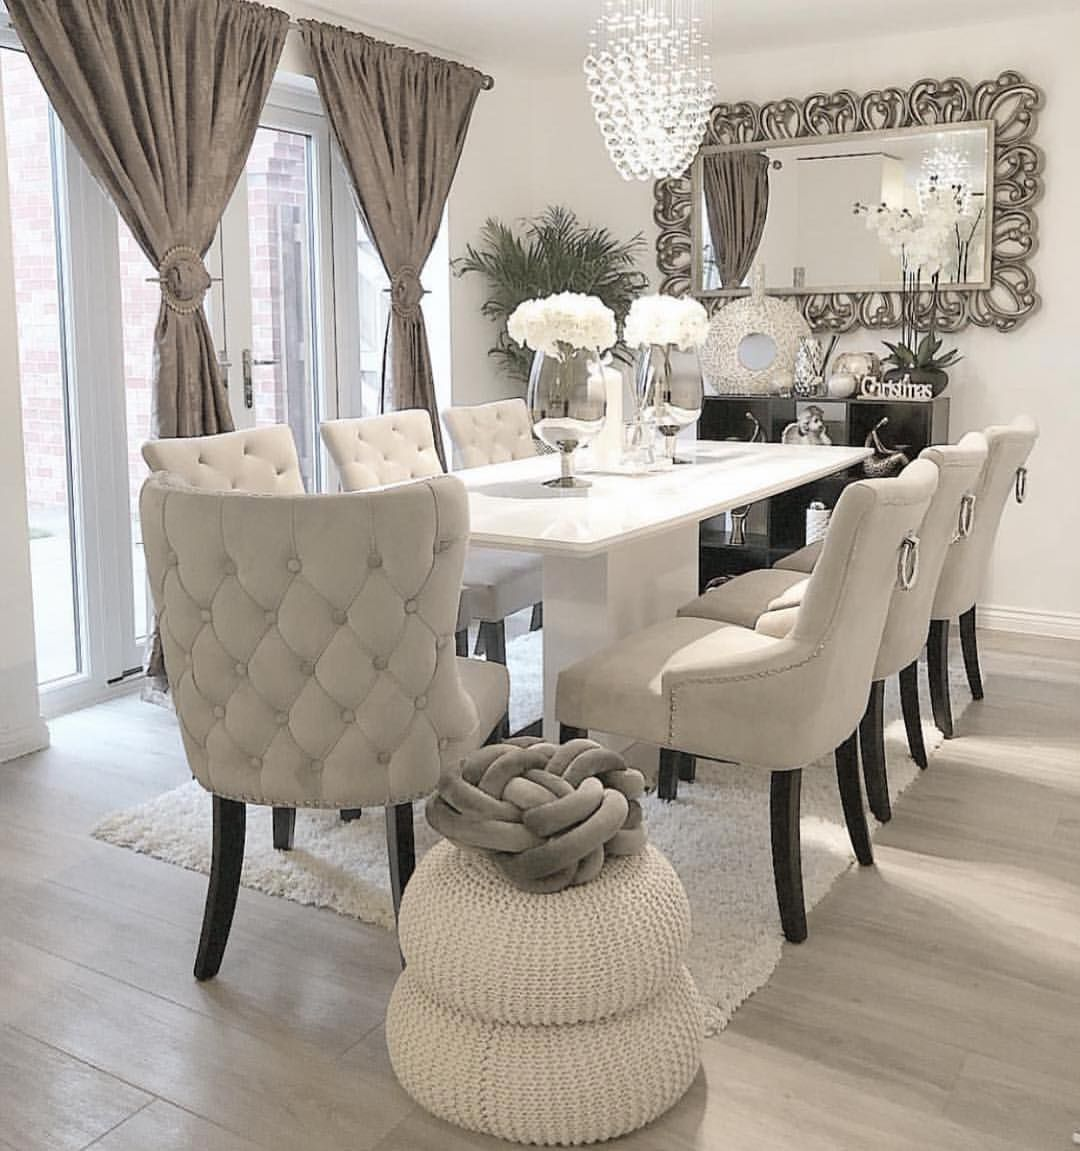 Via ivys luxury home idea por dani porto homeidea decor decoracao    also best decorating ideas images in bedrooms dinning table rh pinterest